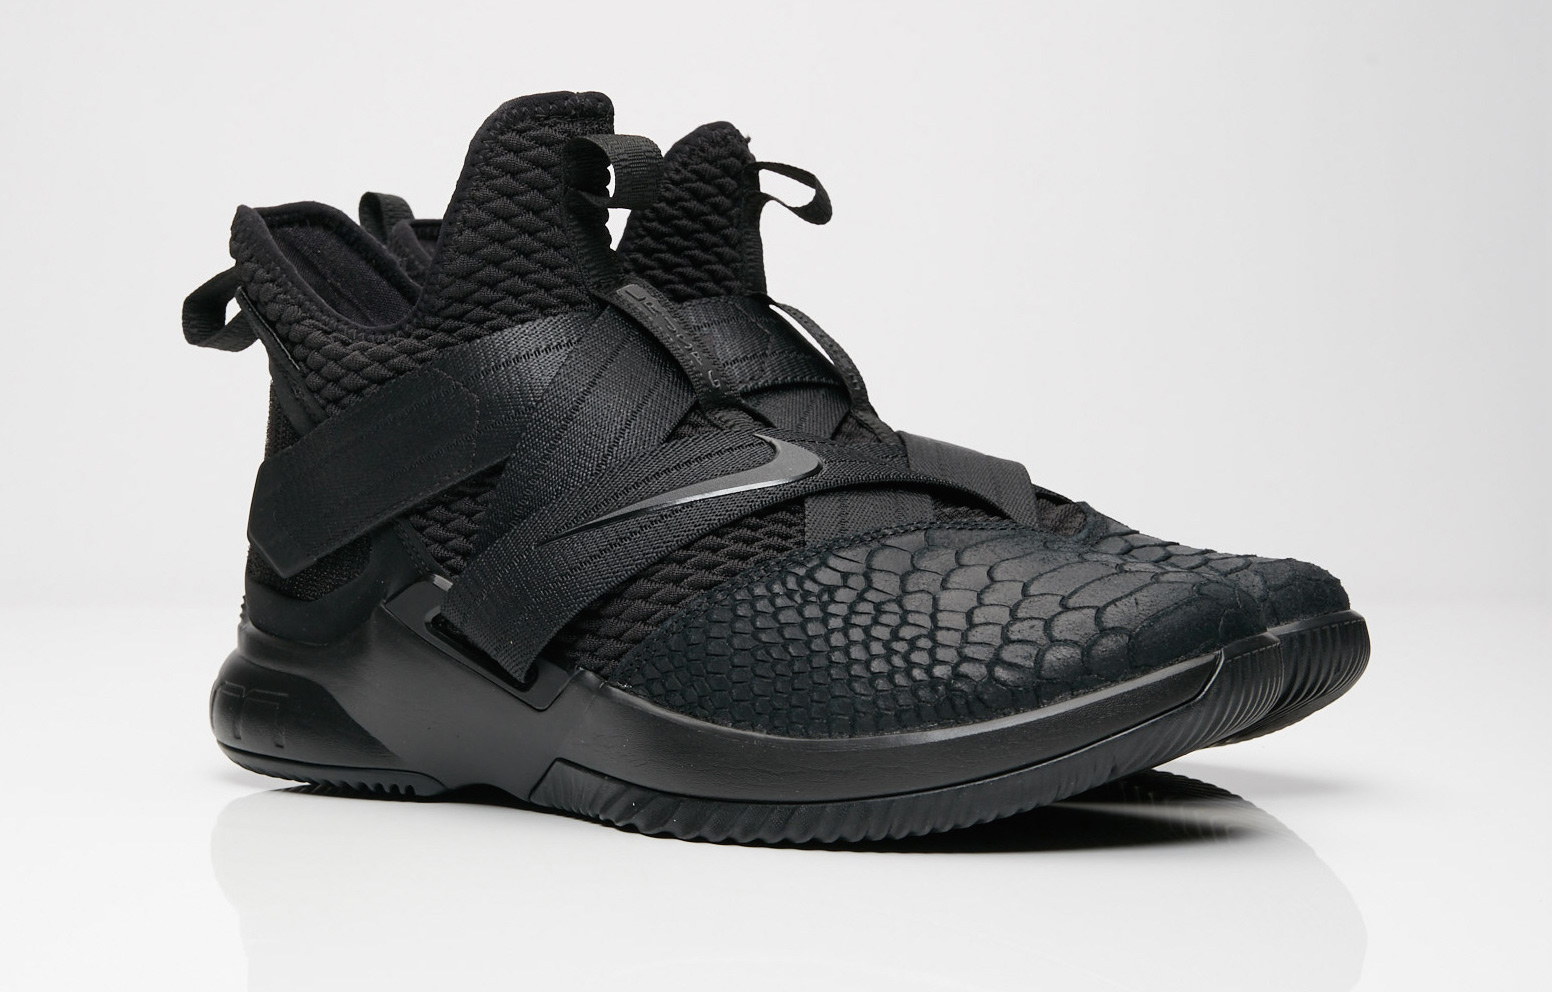 low priced 78991 a45aa Nike LeBron Soldier 12 Triple Black Arriving This Weekend ...